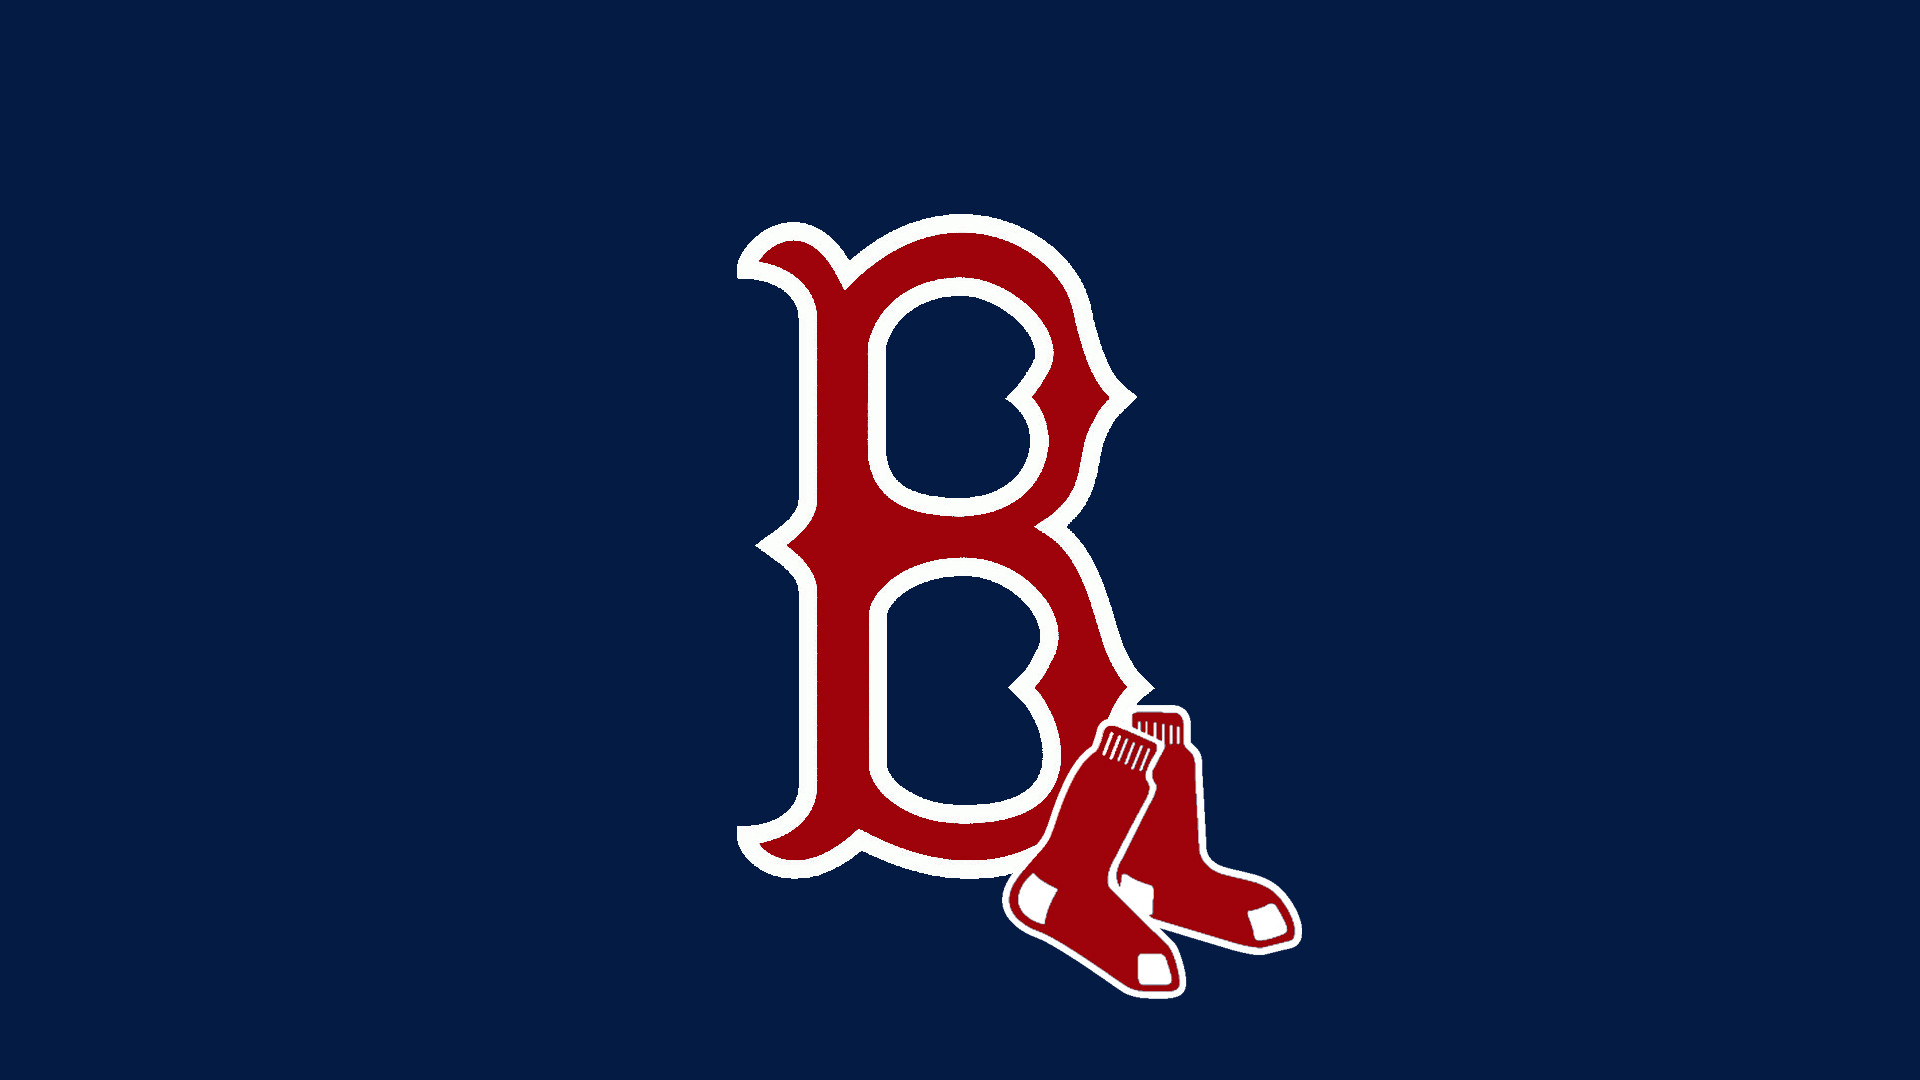 Boston Red Sox Red Sox Red Sox Wallpaper – Boston Red Sox  Wallpaper (8502641